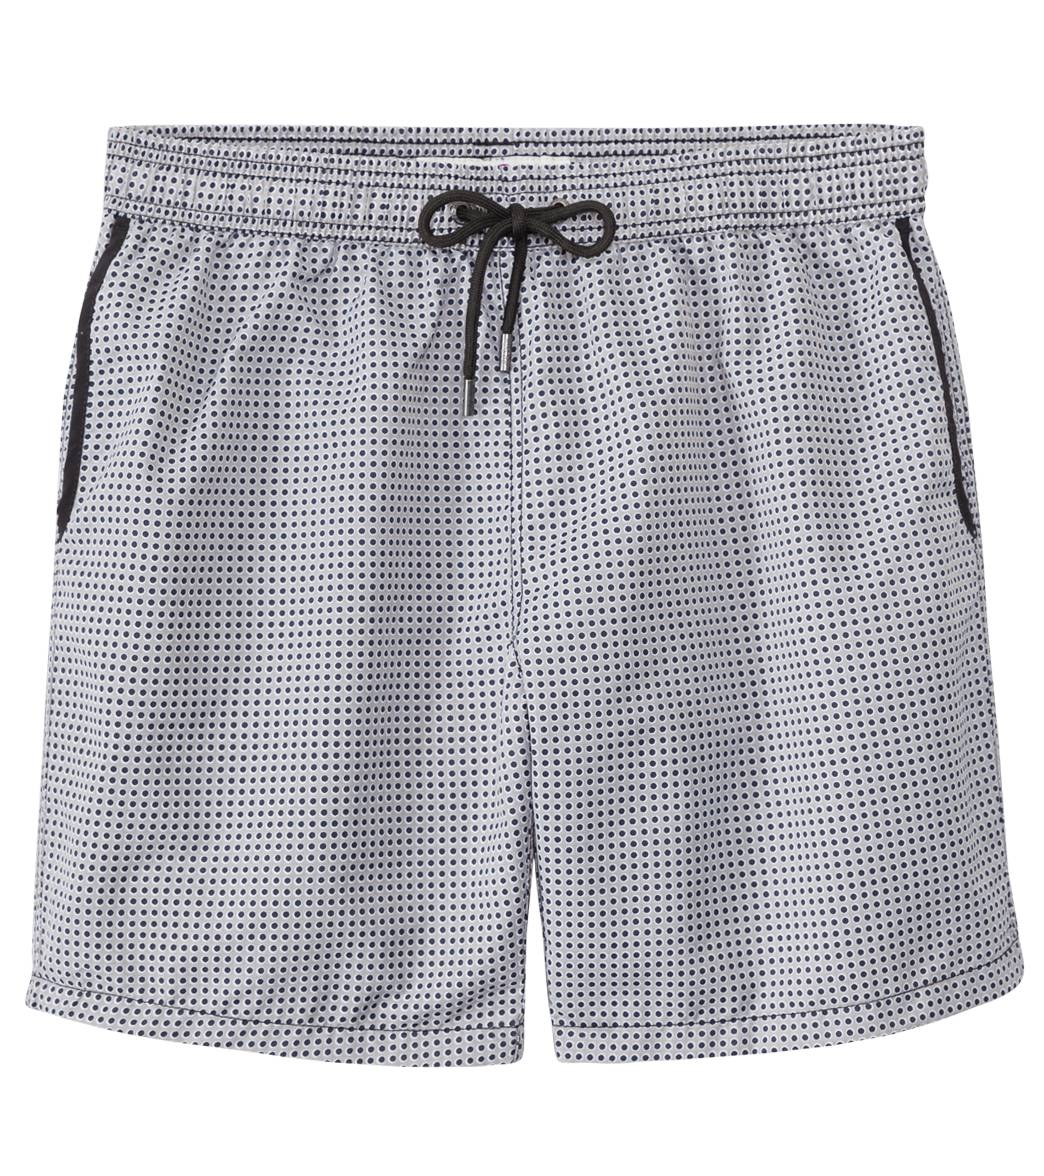 8b1b7fb9f2 Mr.Swim The Dale Dots Trunk at SwimOutlet.com - Free Shipping